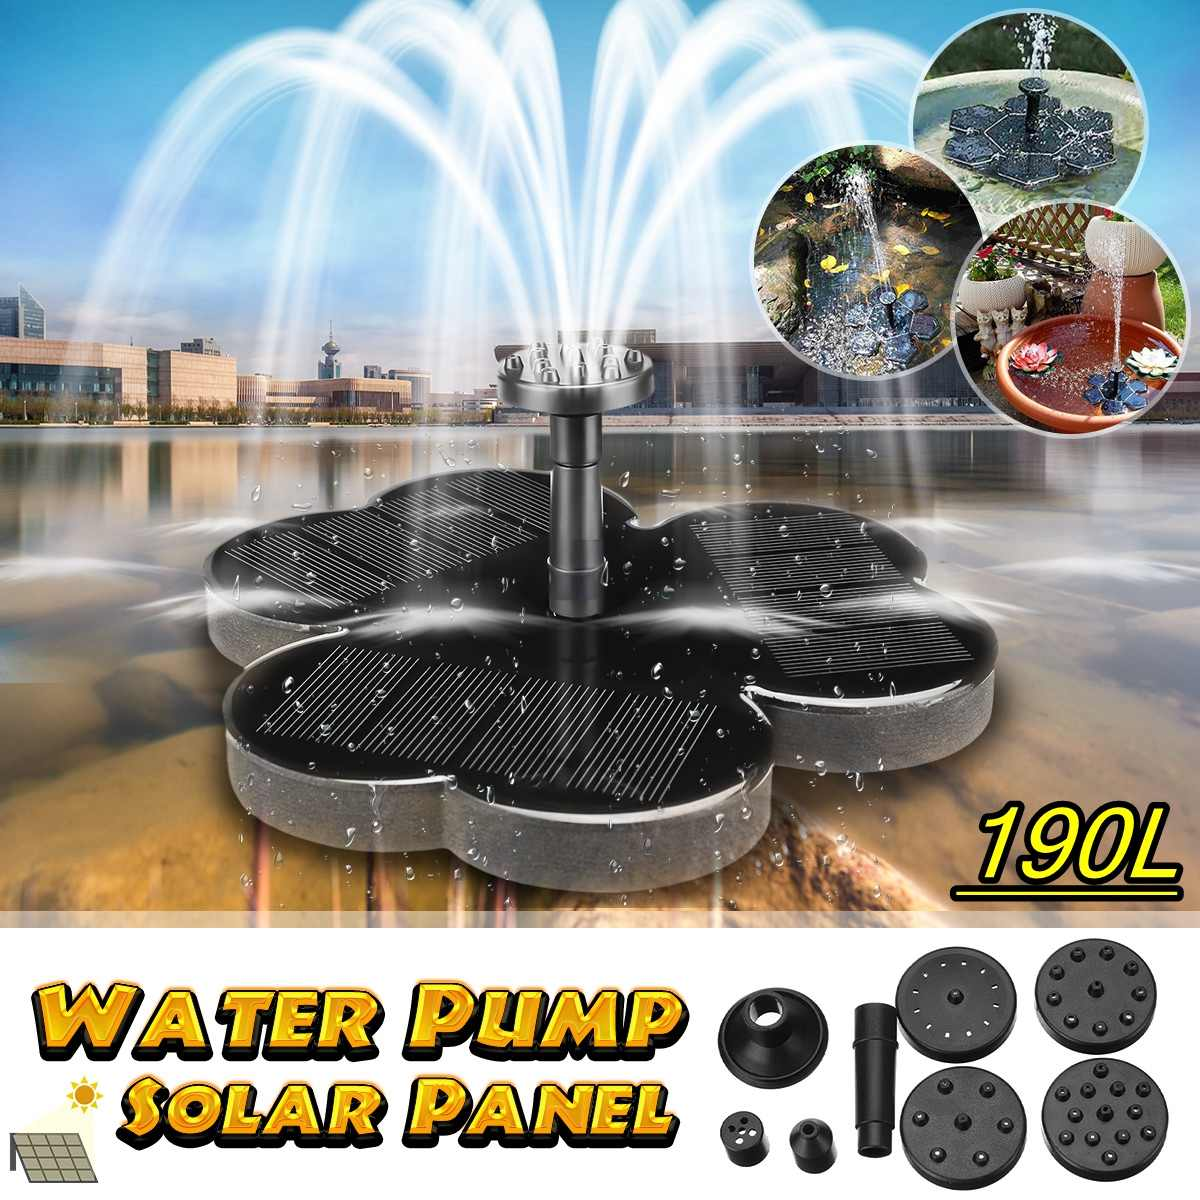 3 Style Solar Water Floating Pump Fountain 160L 190L DC 6V Garden Fountain Artificial Outdoor Decoration Solar Pump Kit  Set